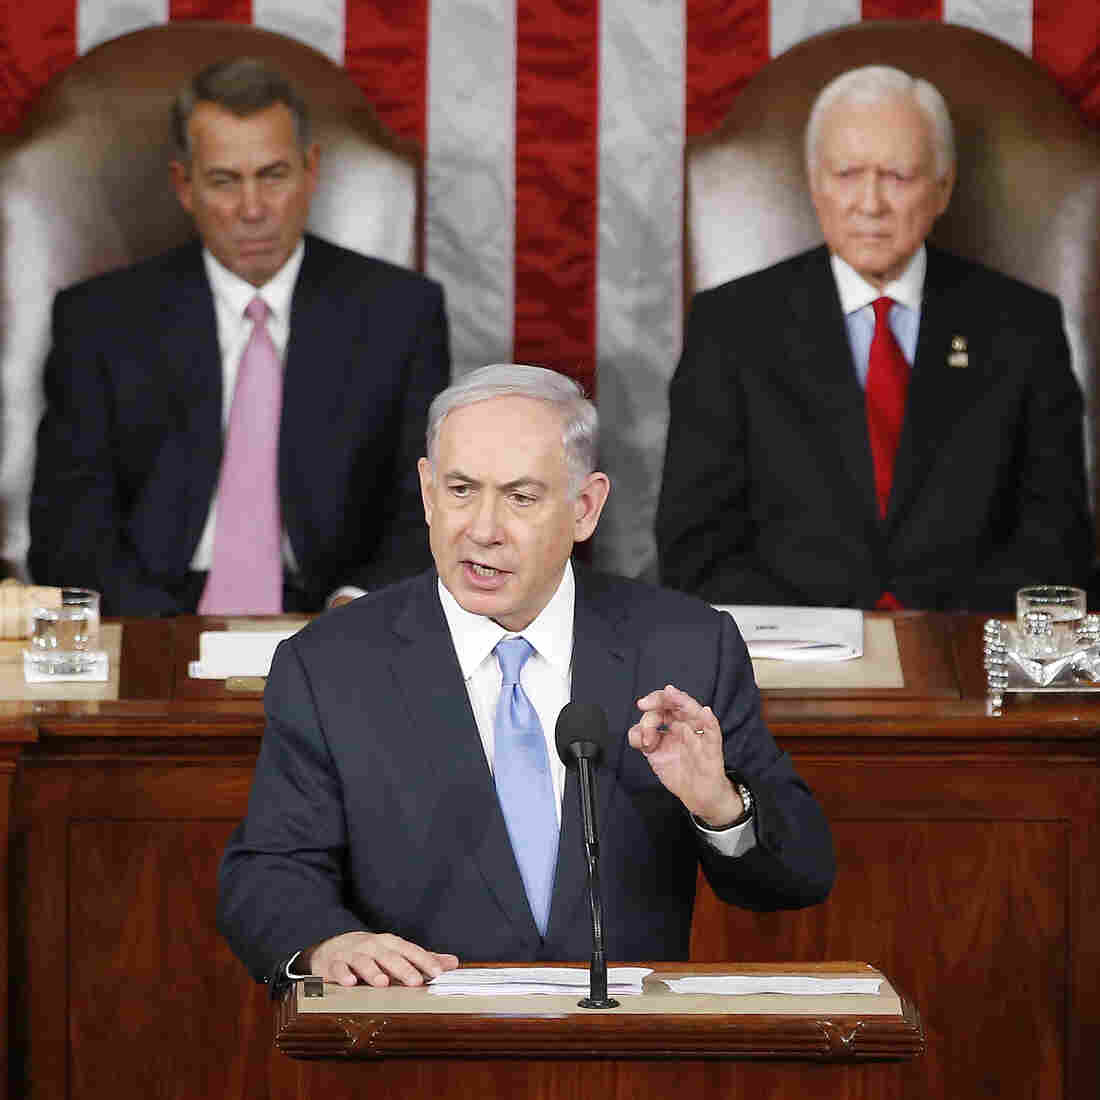 """Israeli Prime Minister Benjamin Netanyahu speaks before a joint meeting of Congress on Capitol Hill in Washington on Tuesday. Netanyahu said the world must unite to """"stop Iran's march of conquest, subjugation and terror."""" House Speaker John Boehner of Ohio (left) and Sen. Orrin Hatch, R-Utah, listen."""